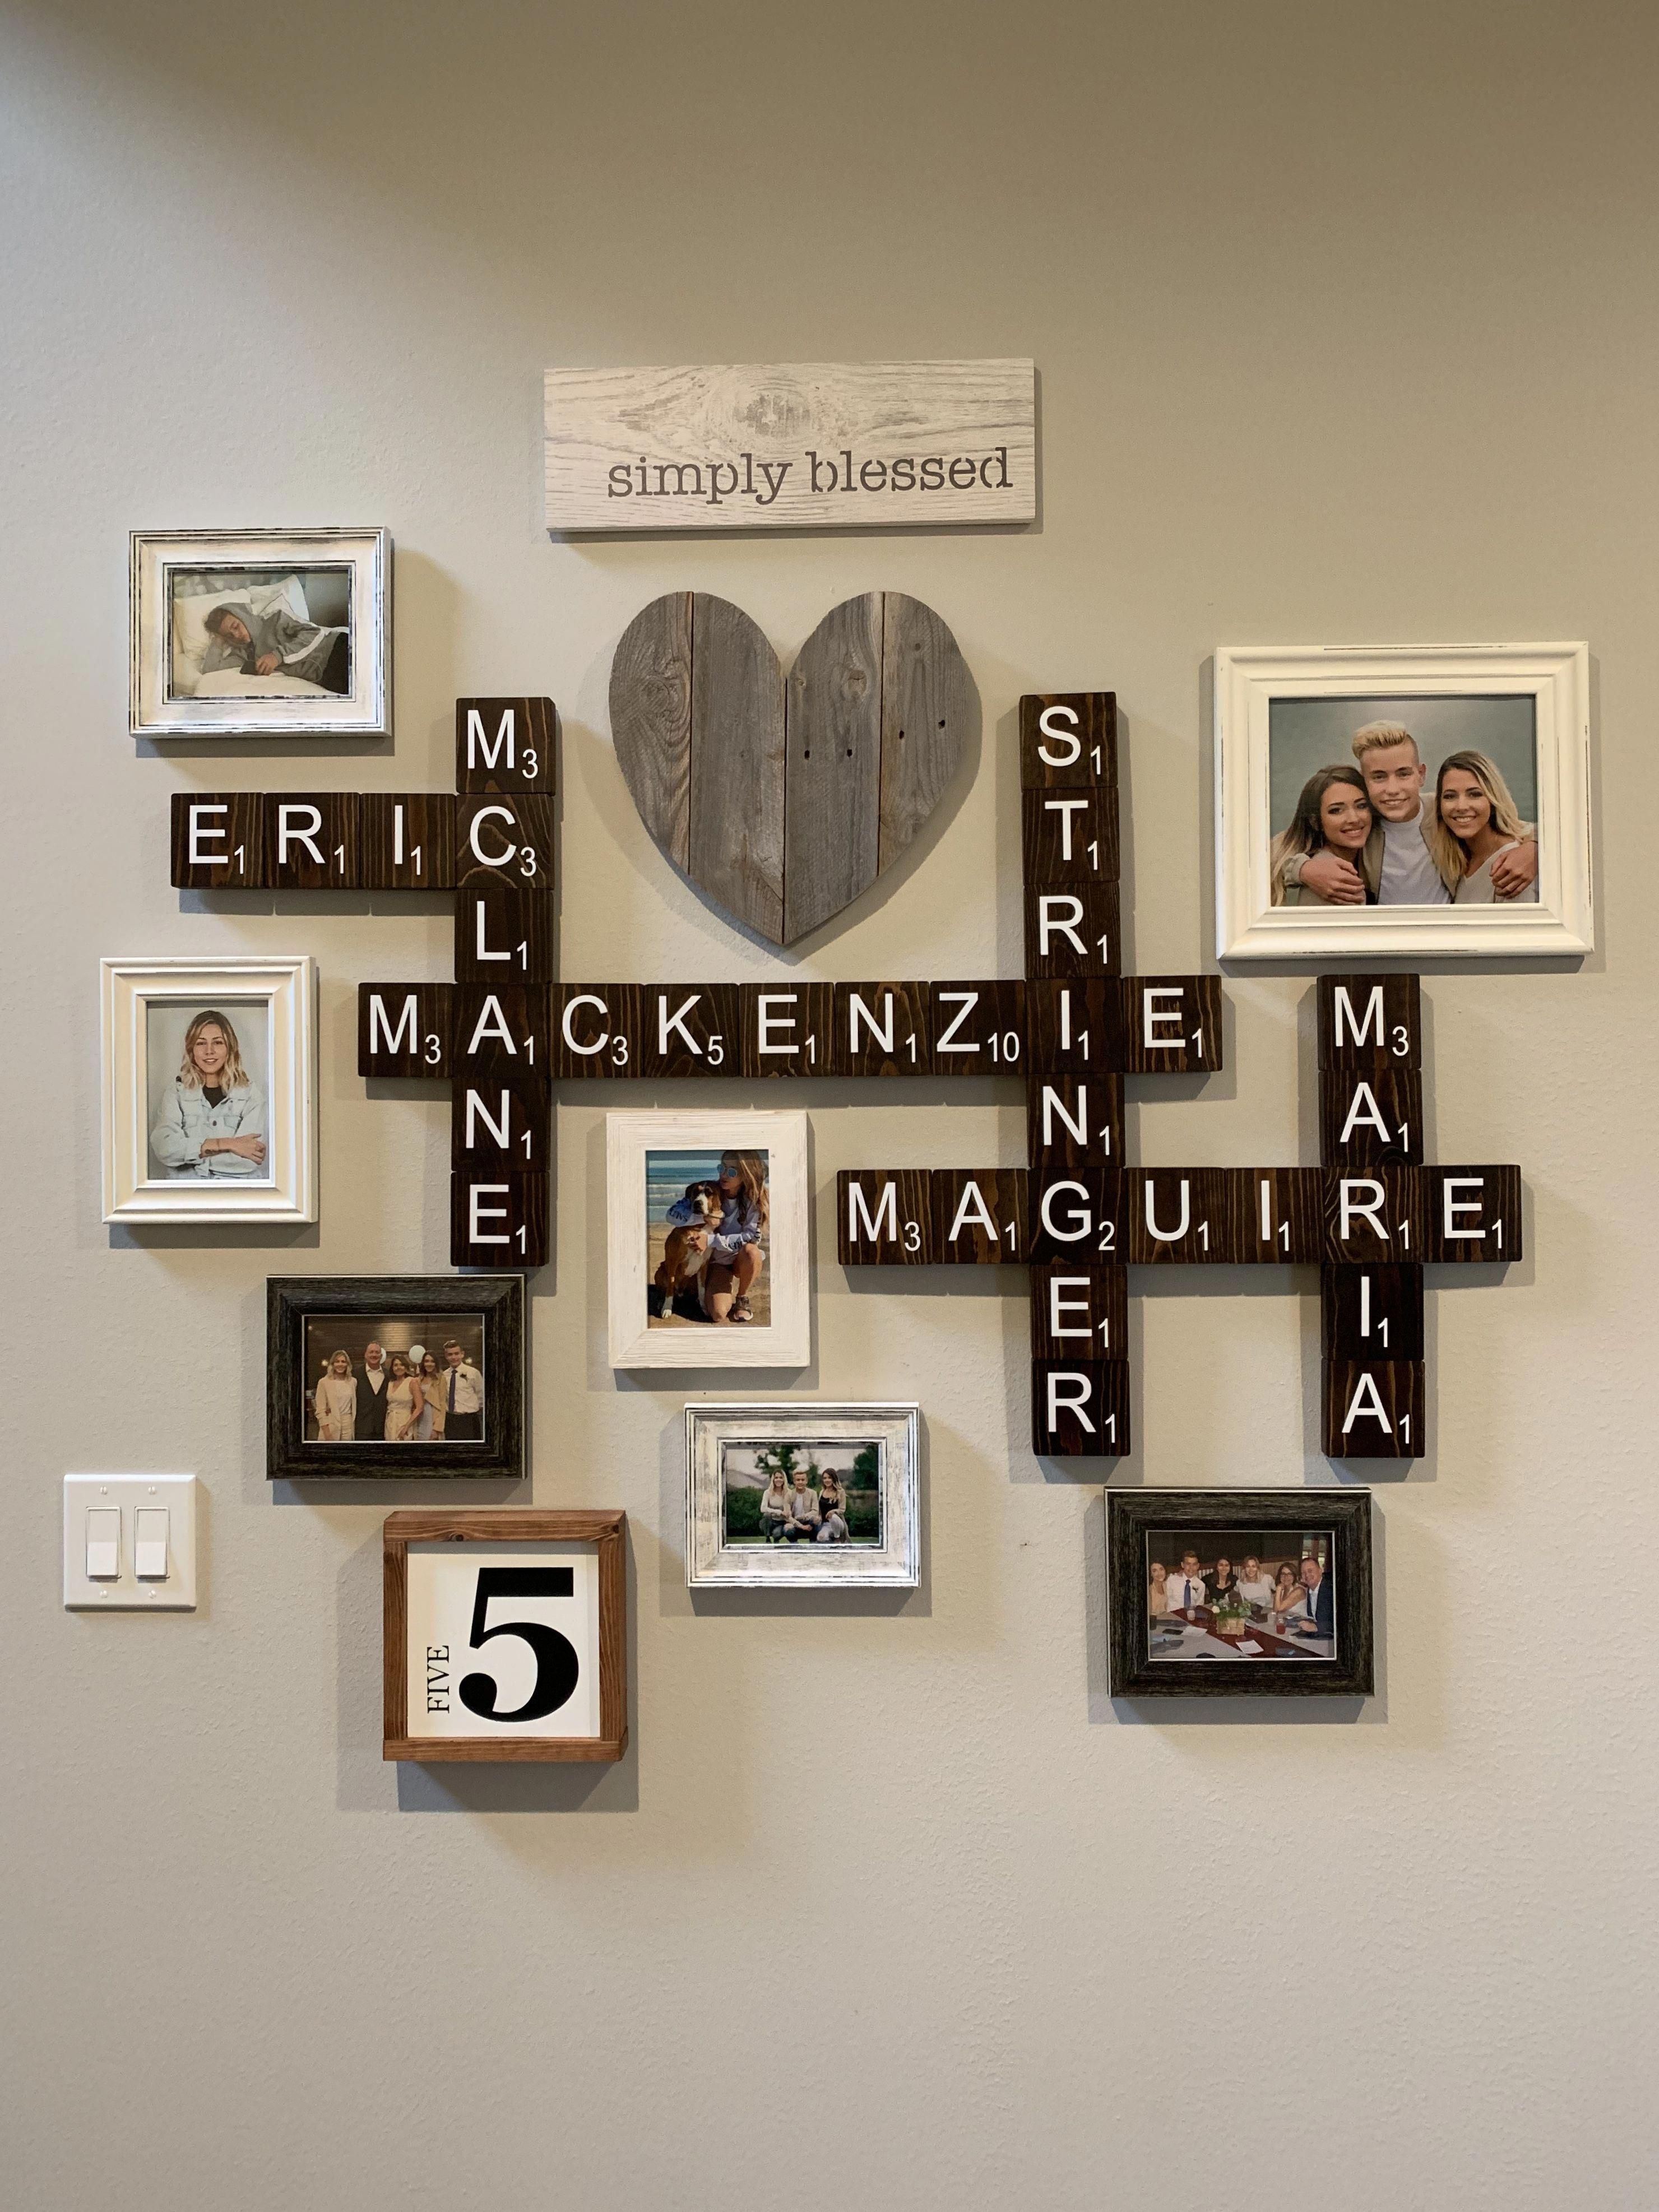 Family Wall Scrabble Letters And Family Photos In 2020 Family Wall Decor Family Pictures On Wall Scrabble Wall Decor